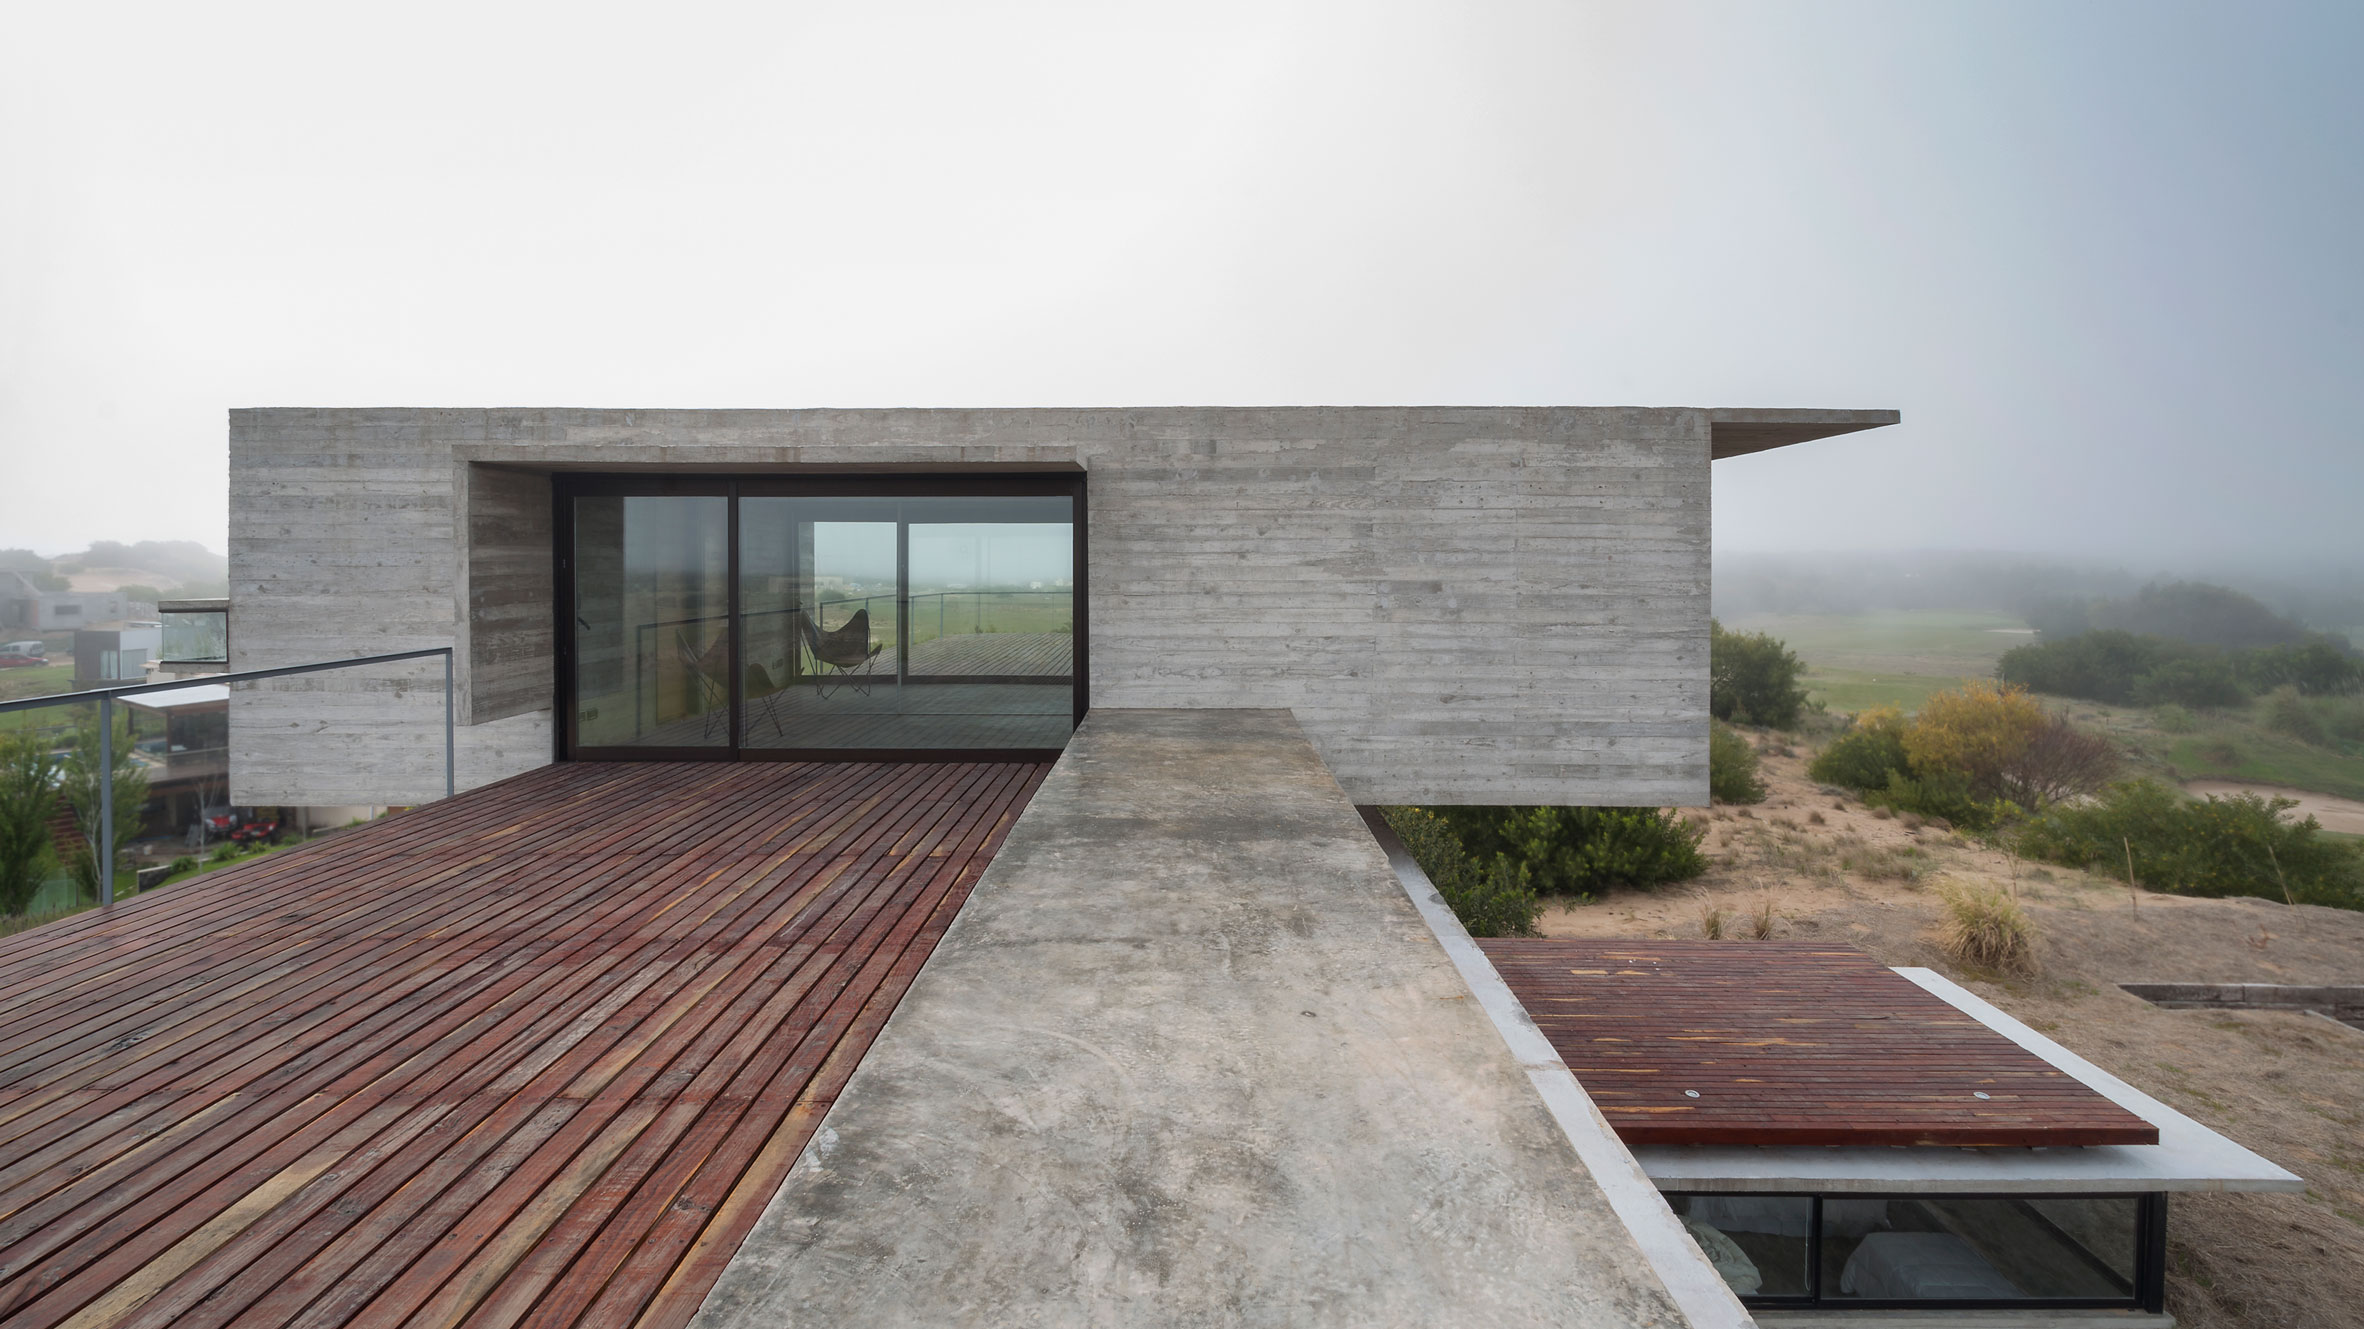 Casa Golf concrete house by Luciano Kruk